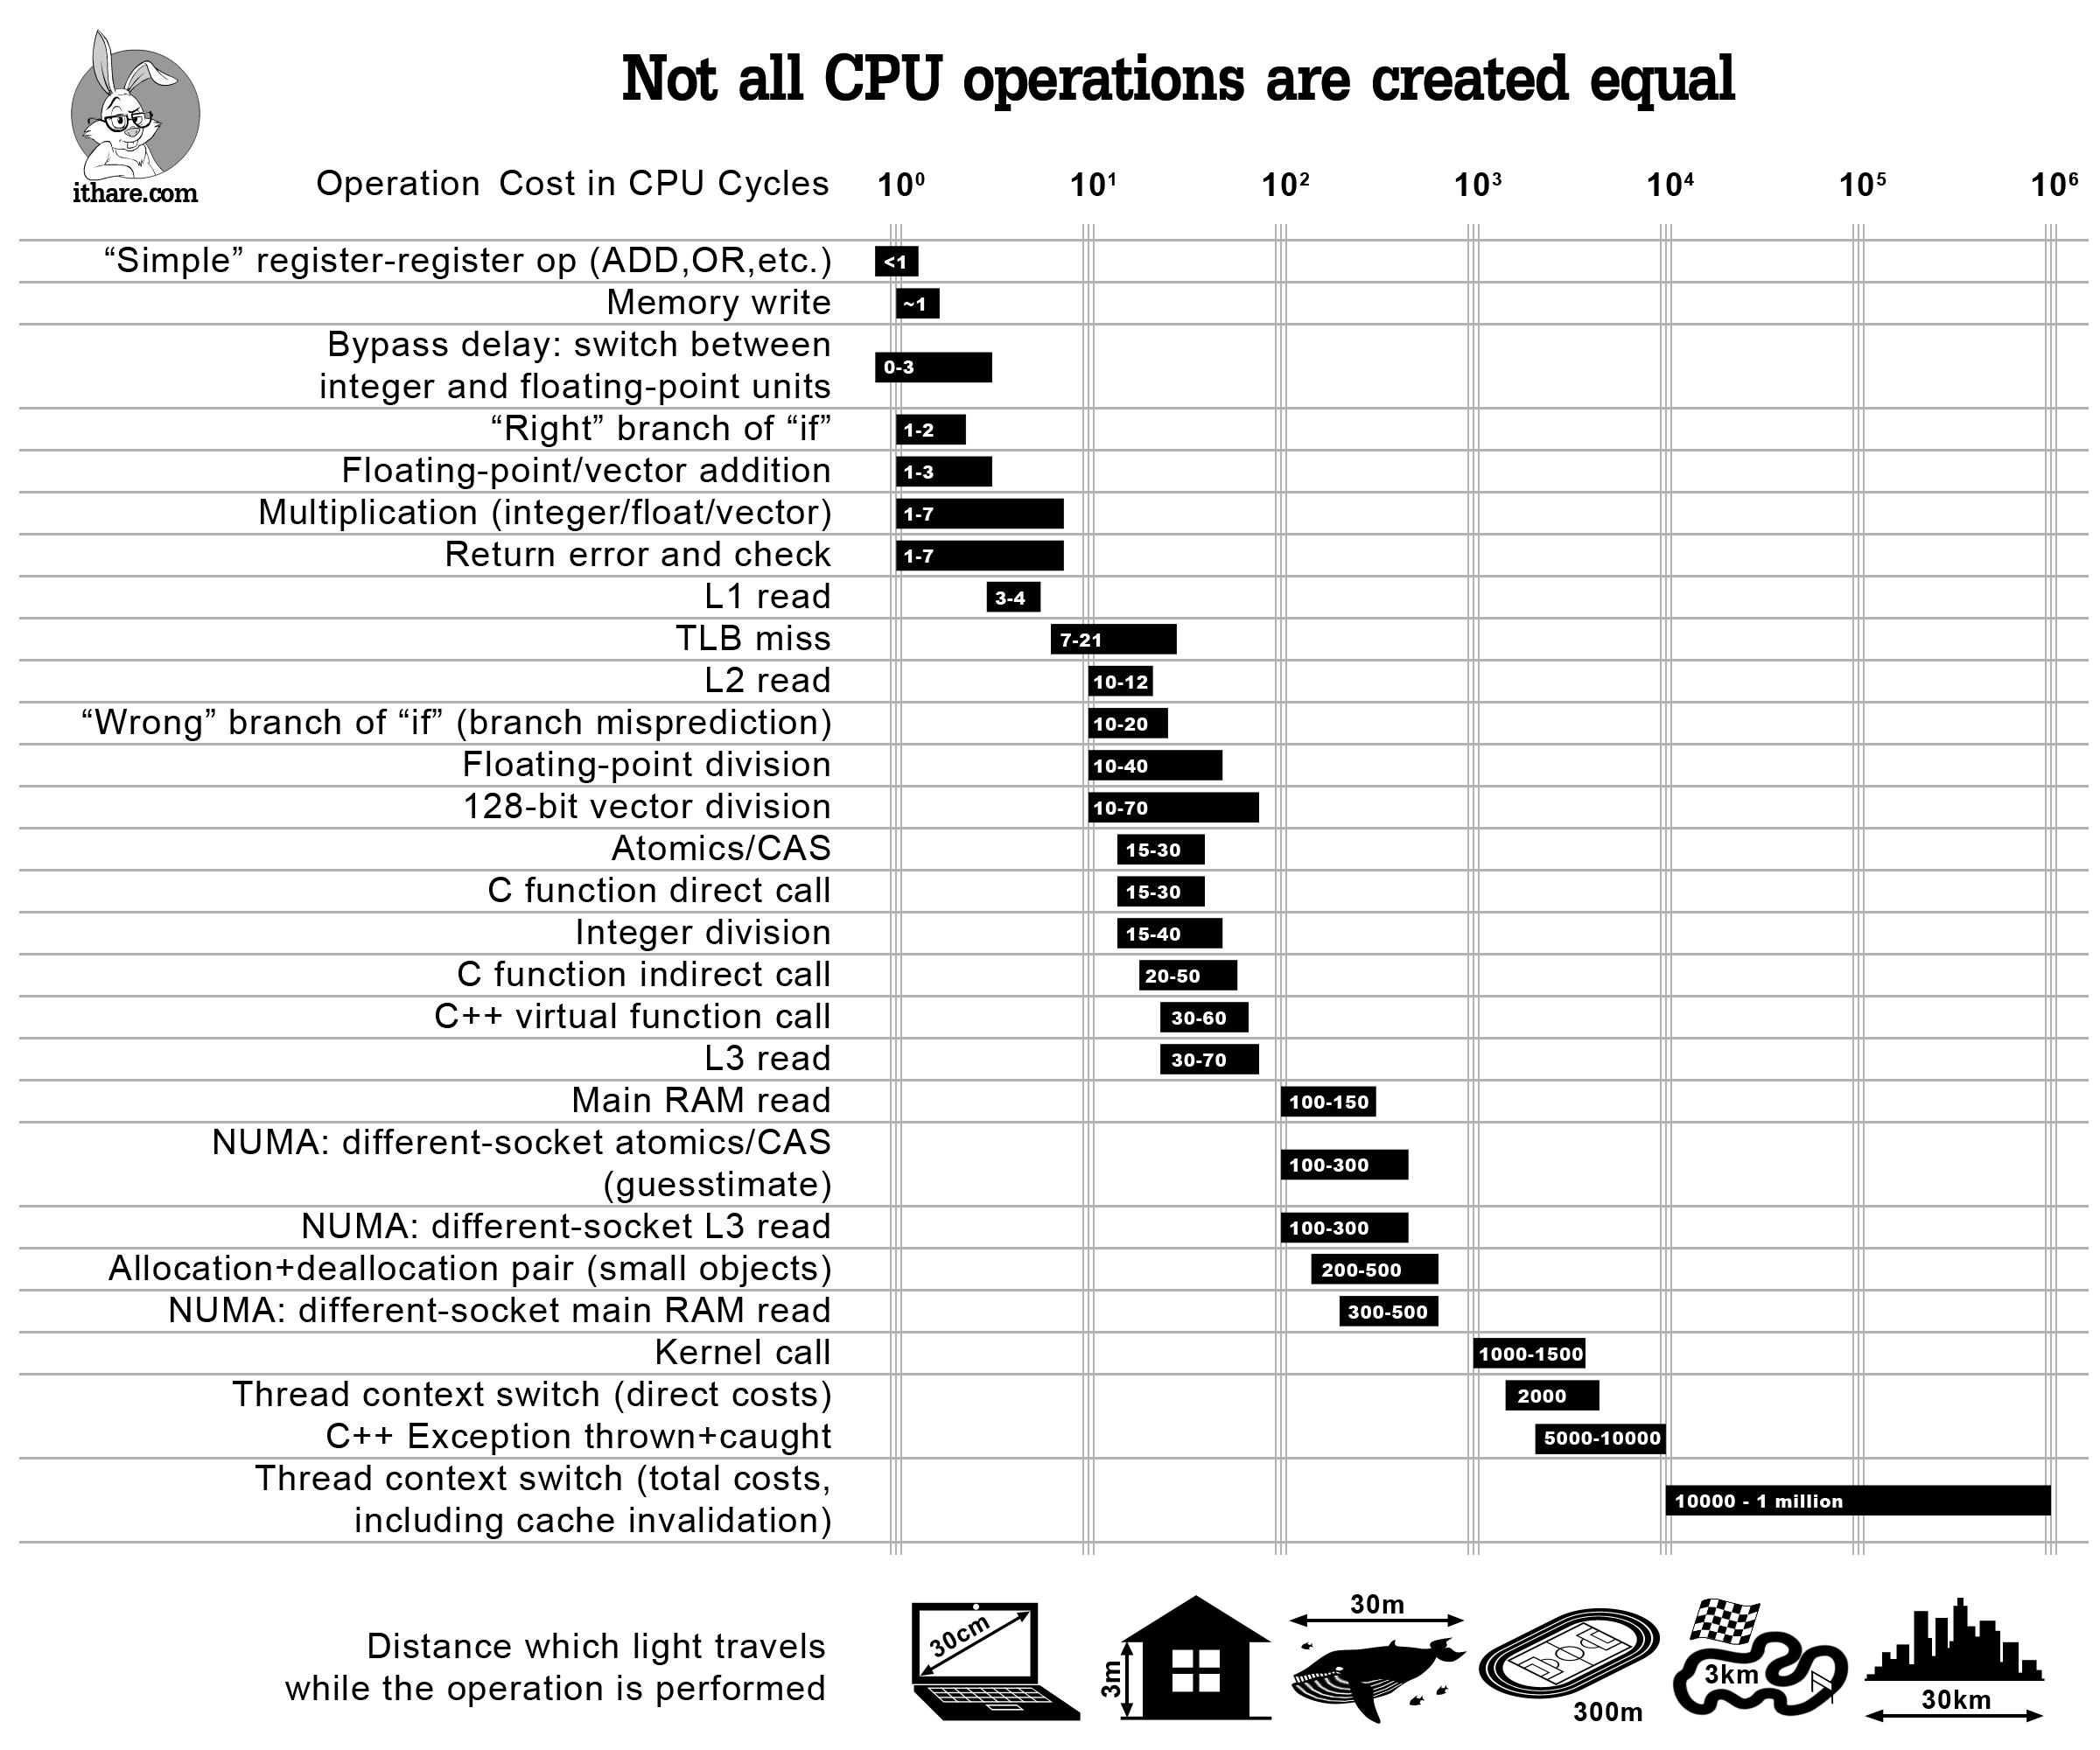 Operation costs in CPU cycles